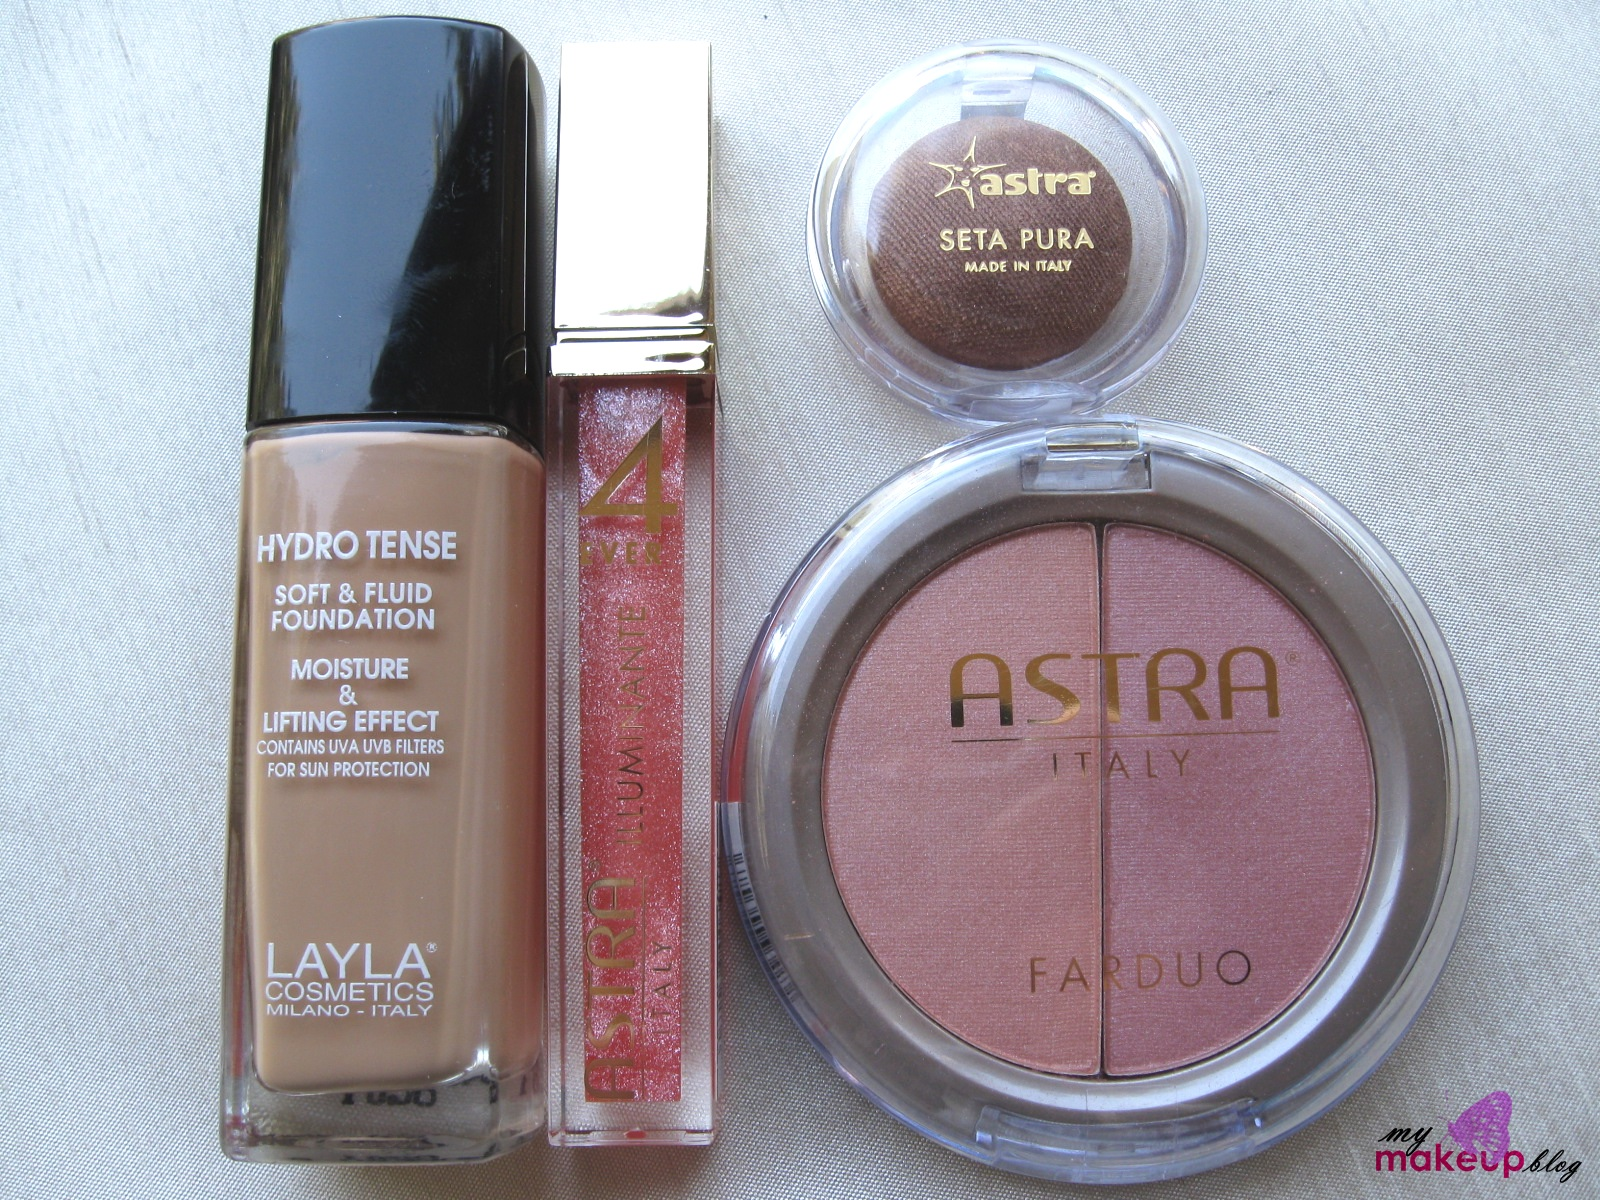 My Makeup Blog: makeup, skin care and beyond: Gifts from Italy